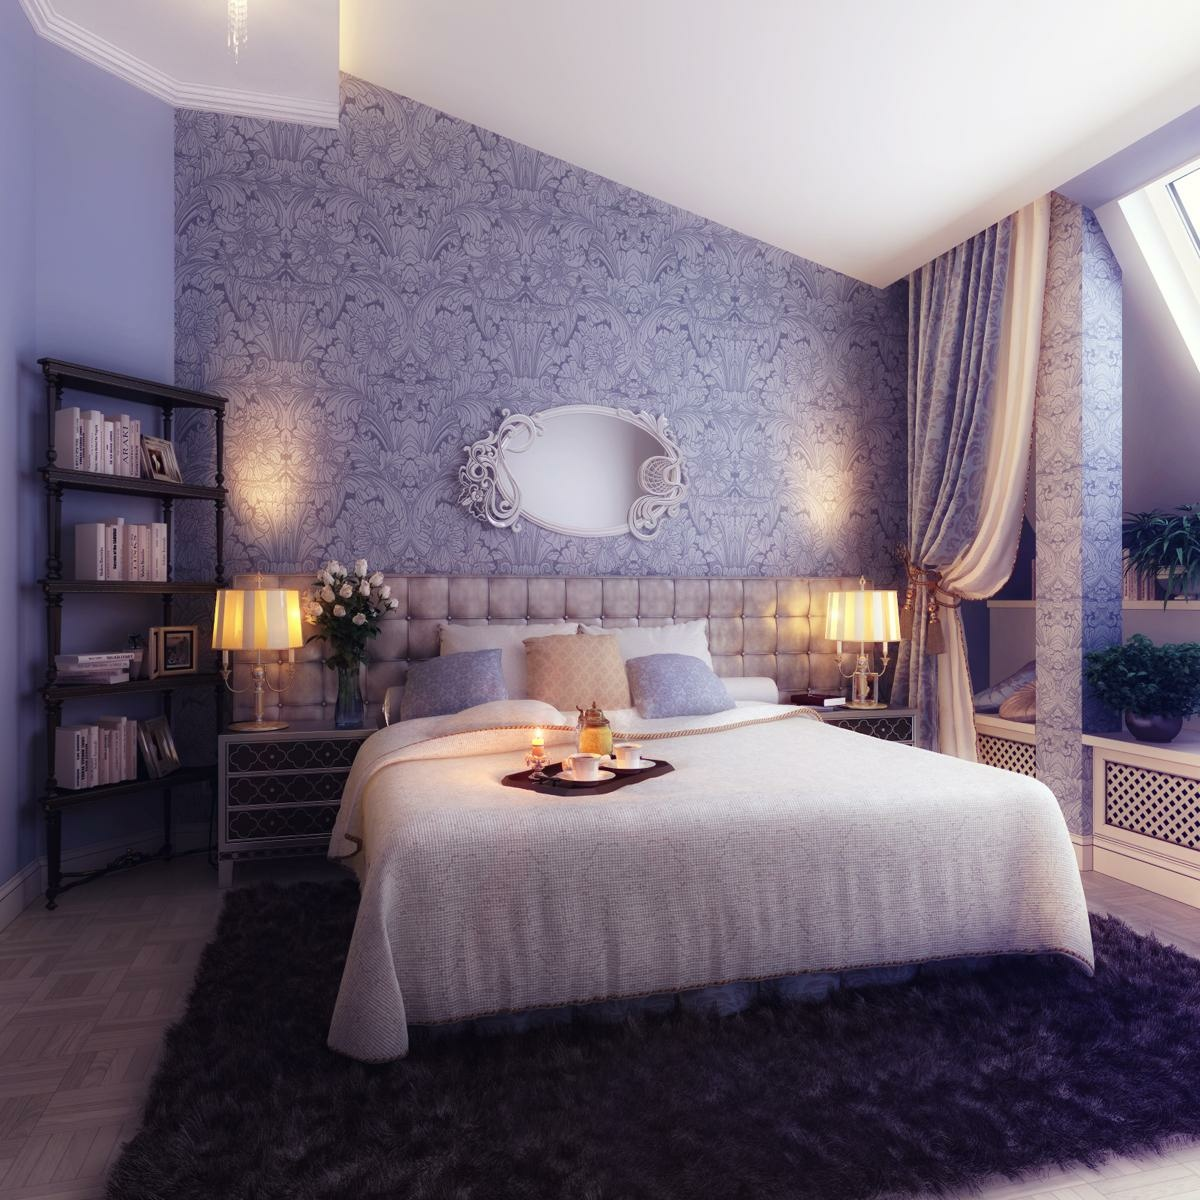 Bedrooms with traditional elegance - Bedrooms images ...